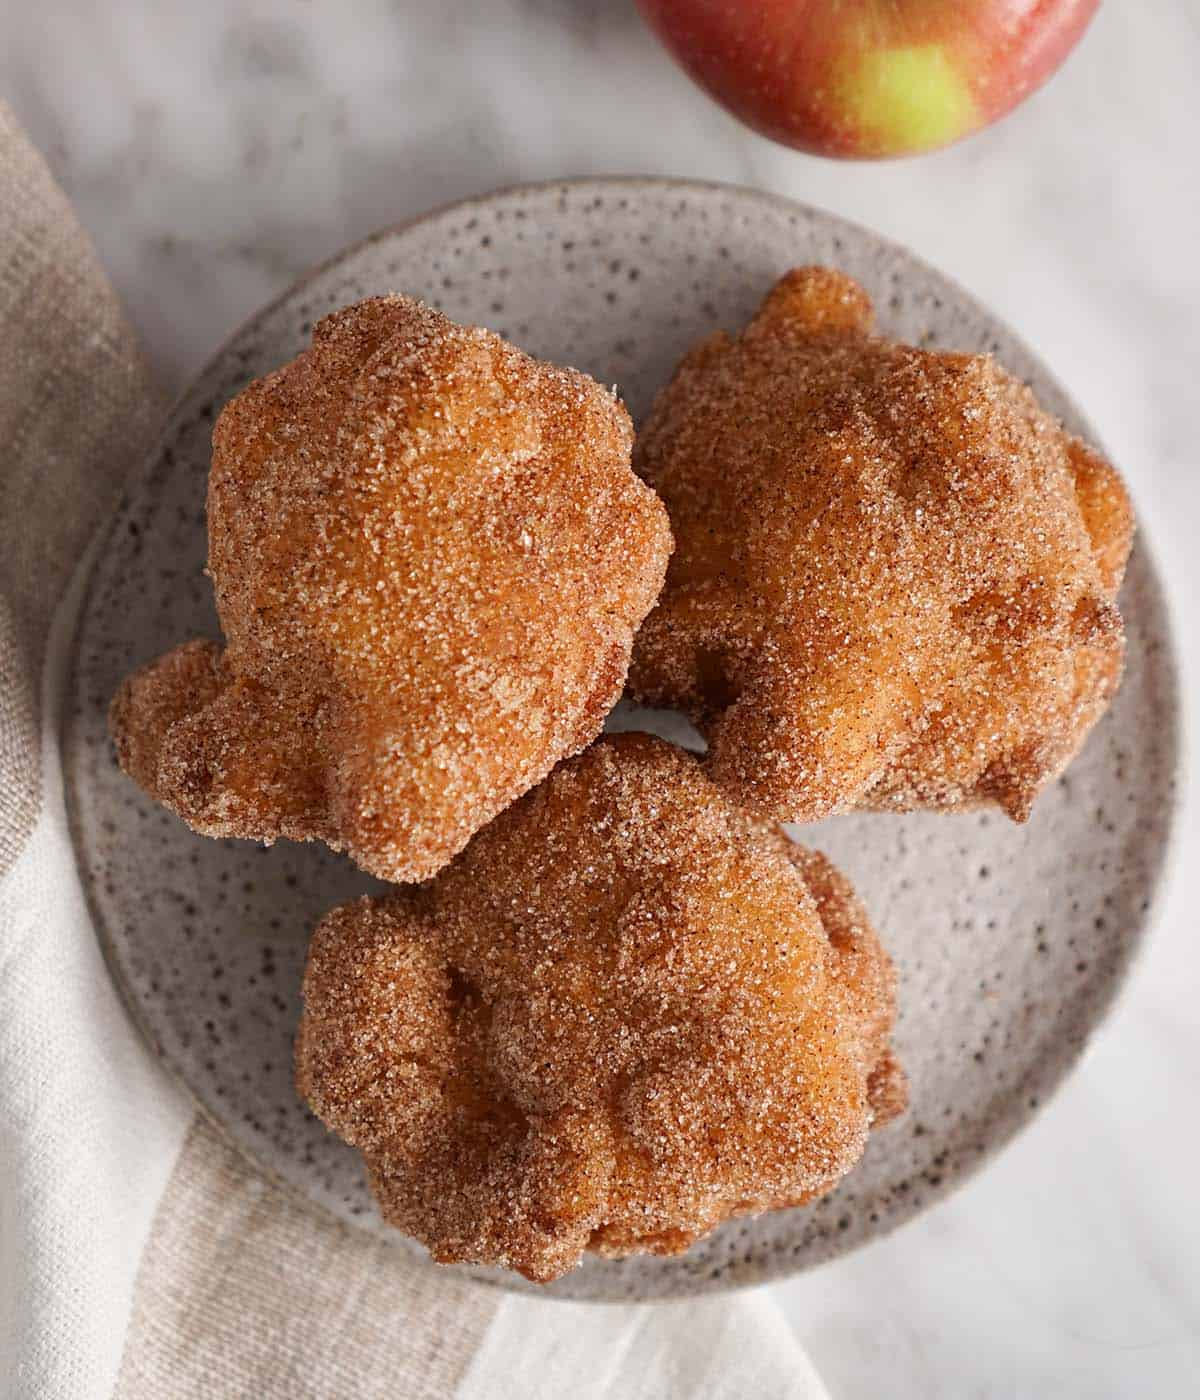 Three apple fritters covered in cinnamon sugar on a grey plate.